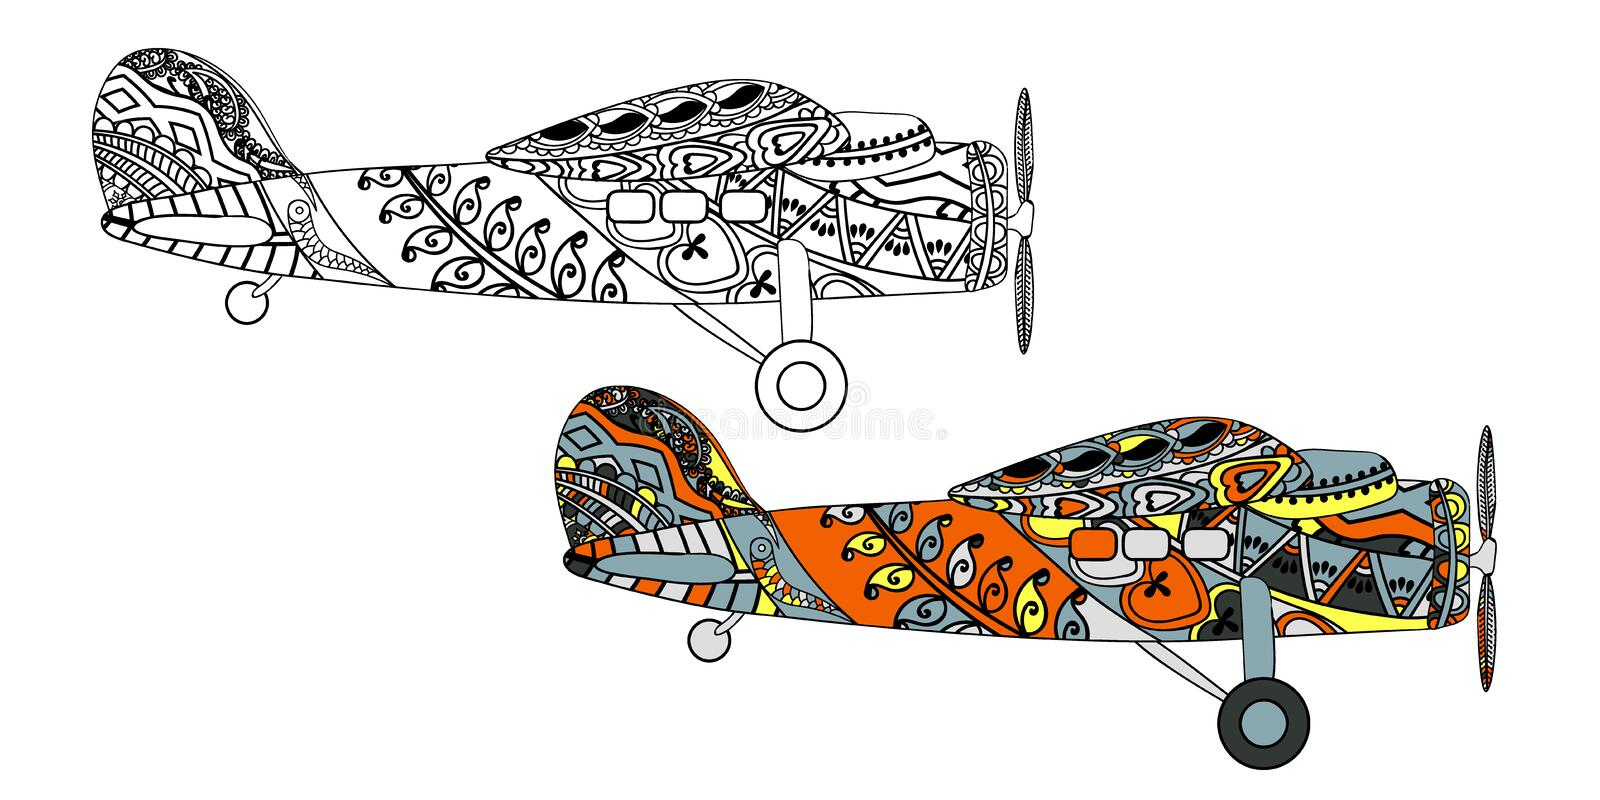 Airplane with ethnic doodle pattern. Zentangle inspired pattern for anti stress coloring book pages for adults and kids. Black on white and colored in one vector illustration